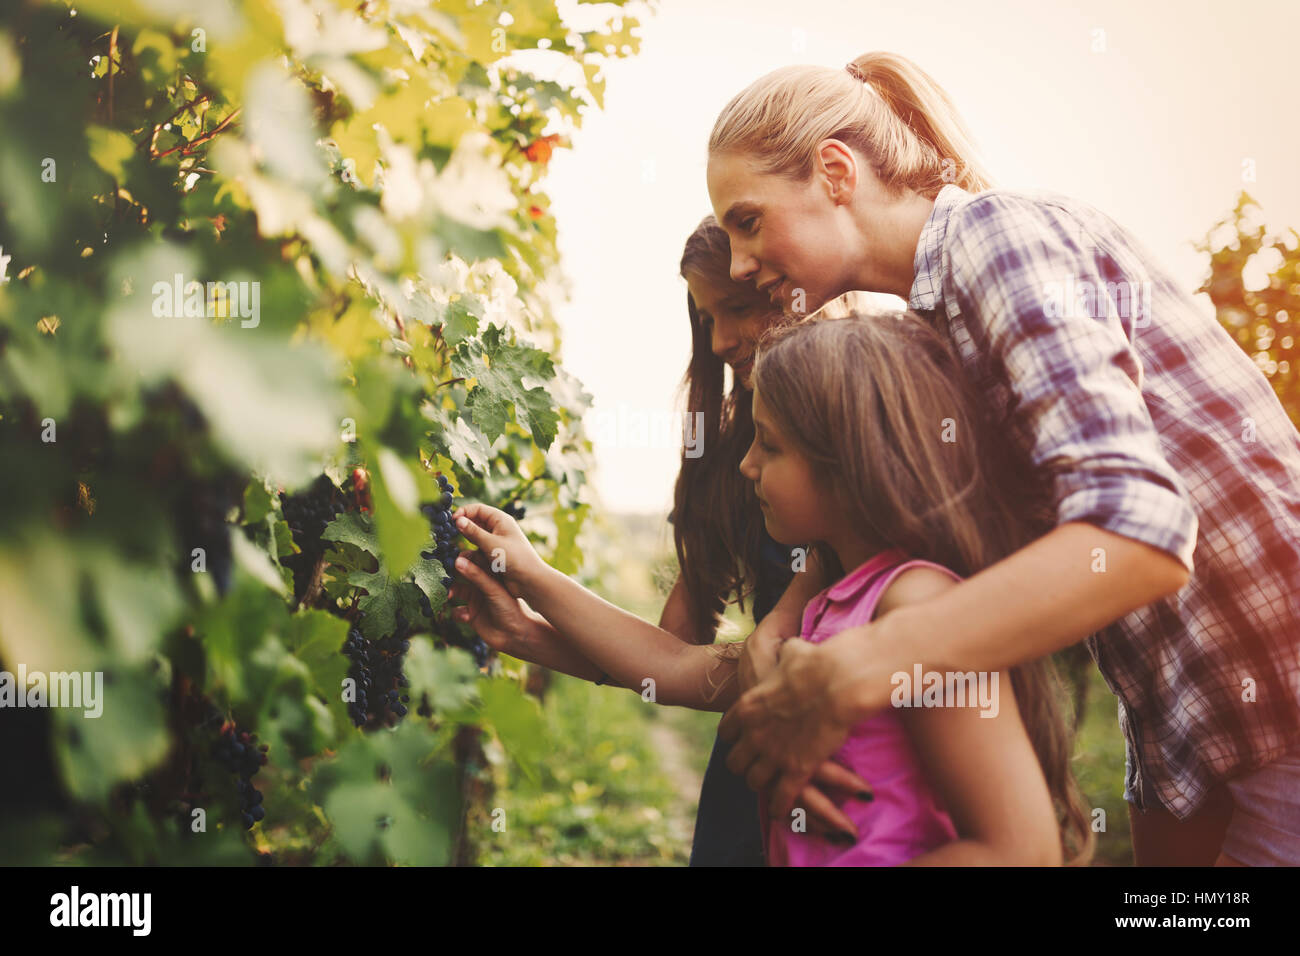 Winemaker family happy together in vineyard before harvesting - Stock Image